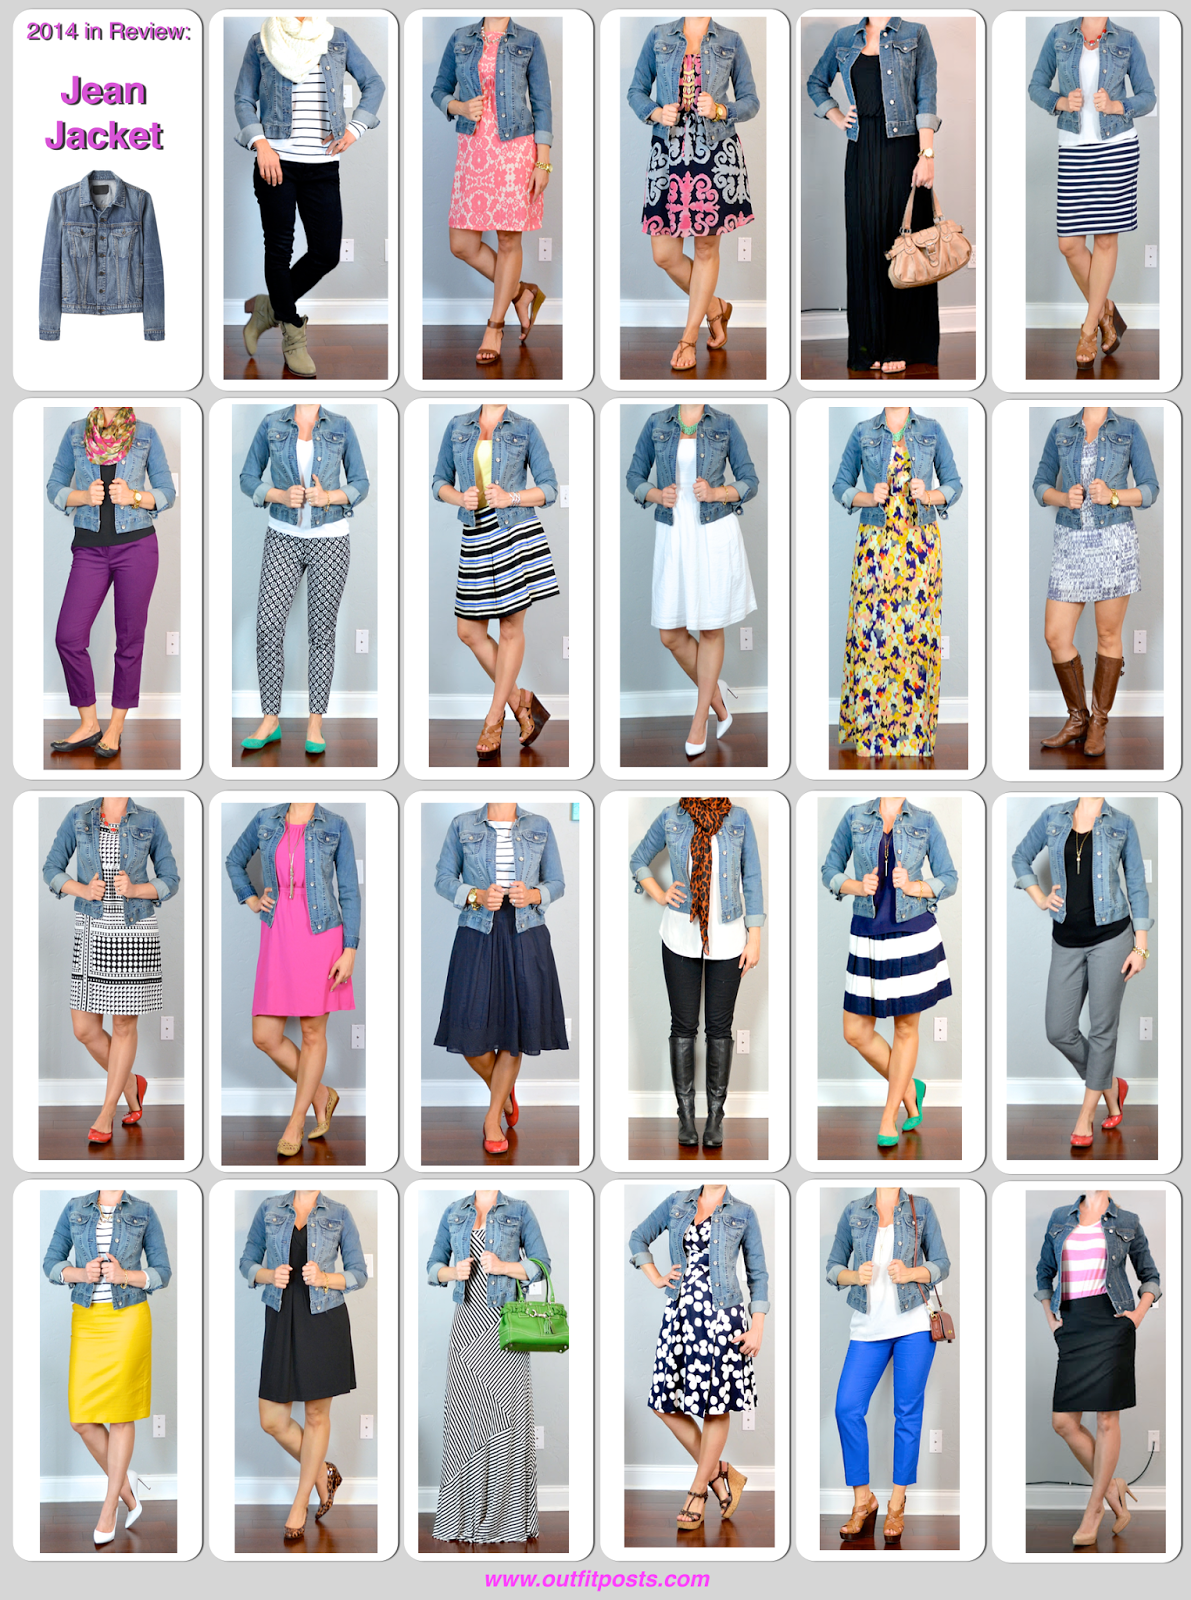 2014 in review - outfit posts: jean jacket - 23 ways | Outfit Posts Dynamic #jeanjacketoutfits